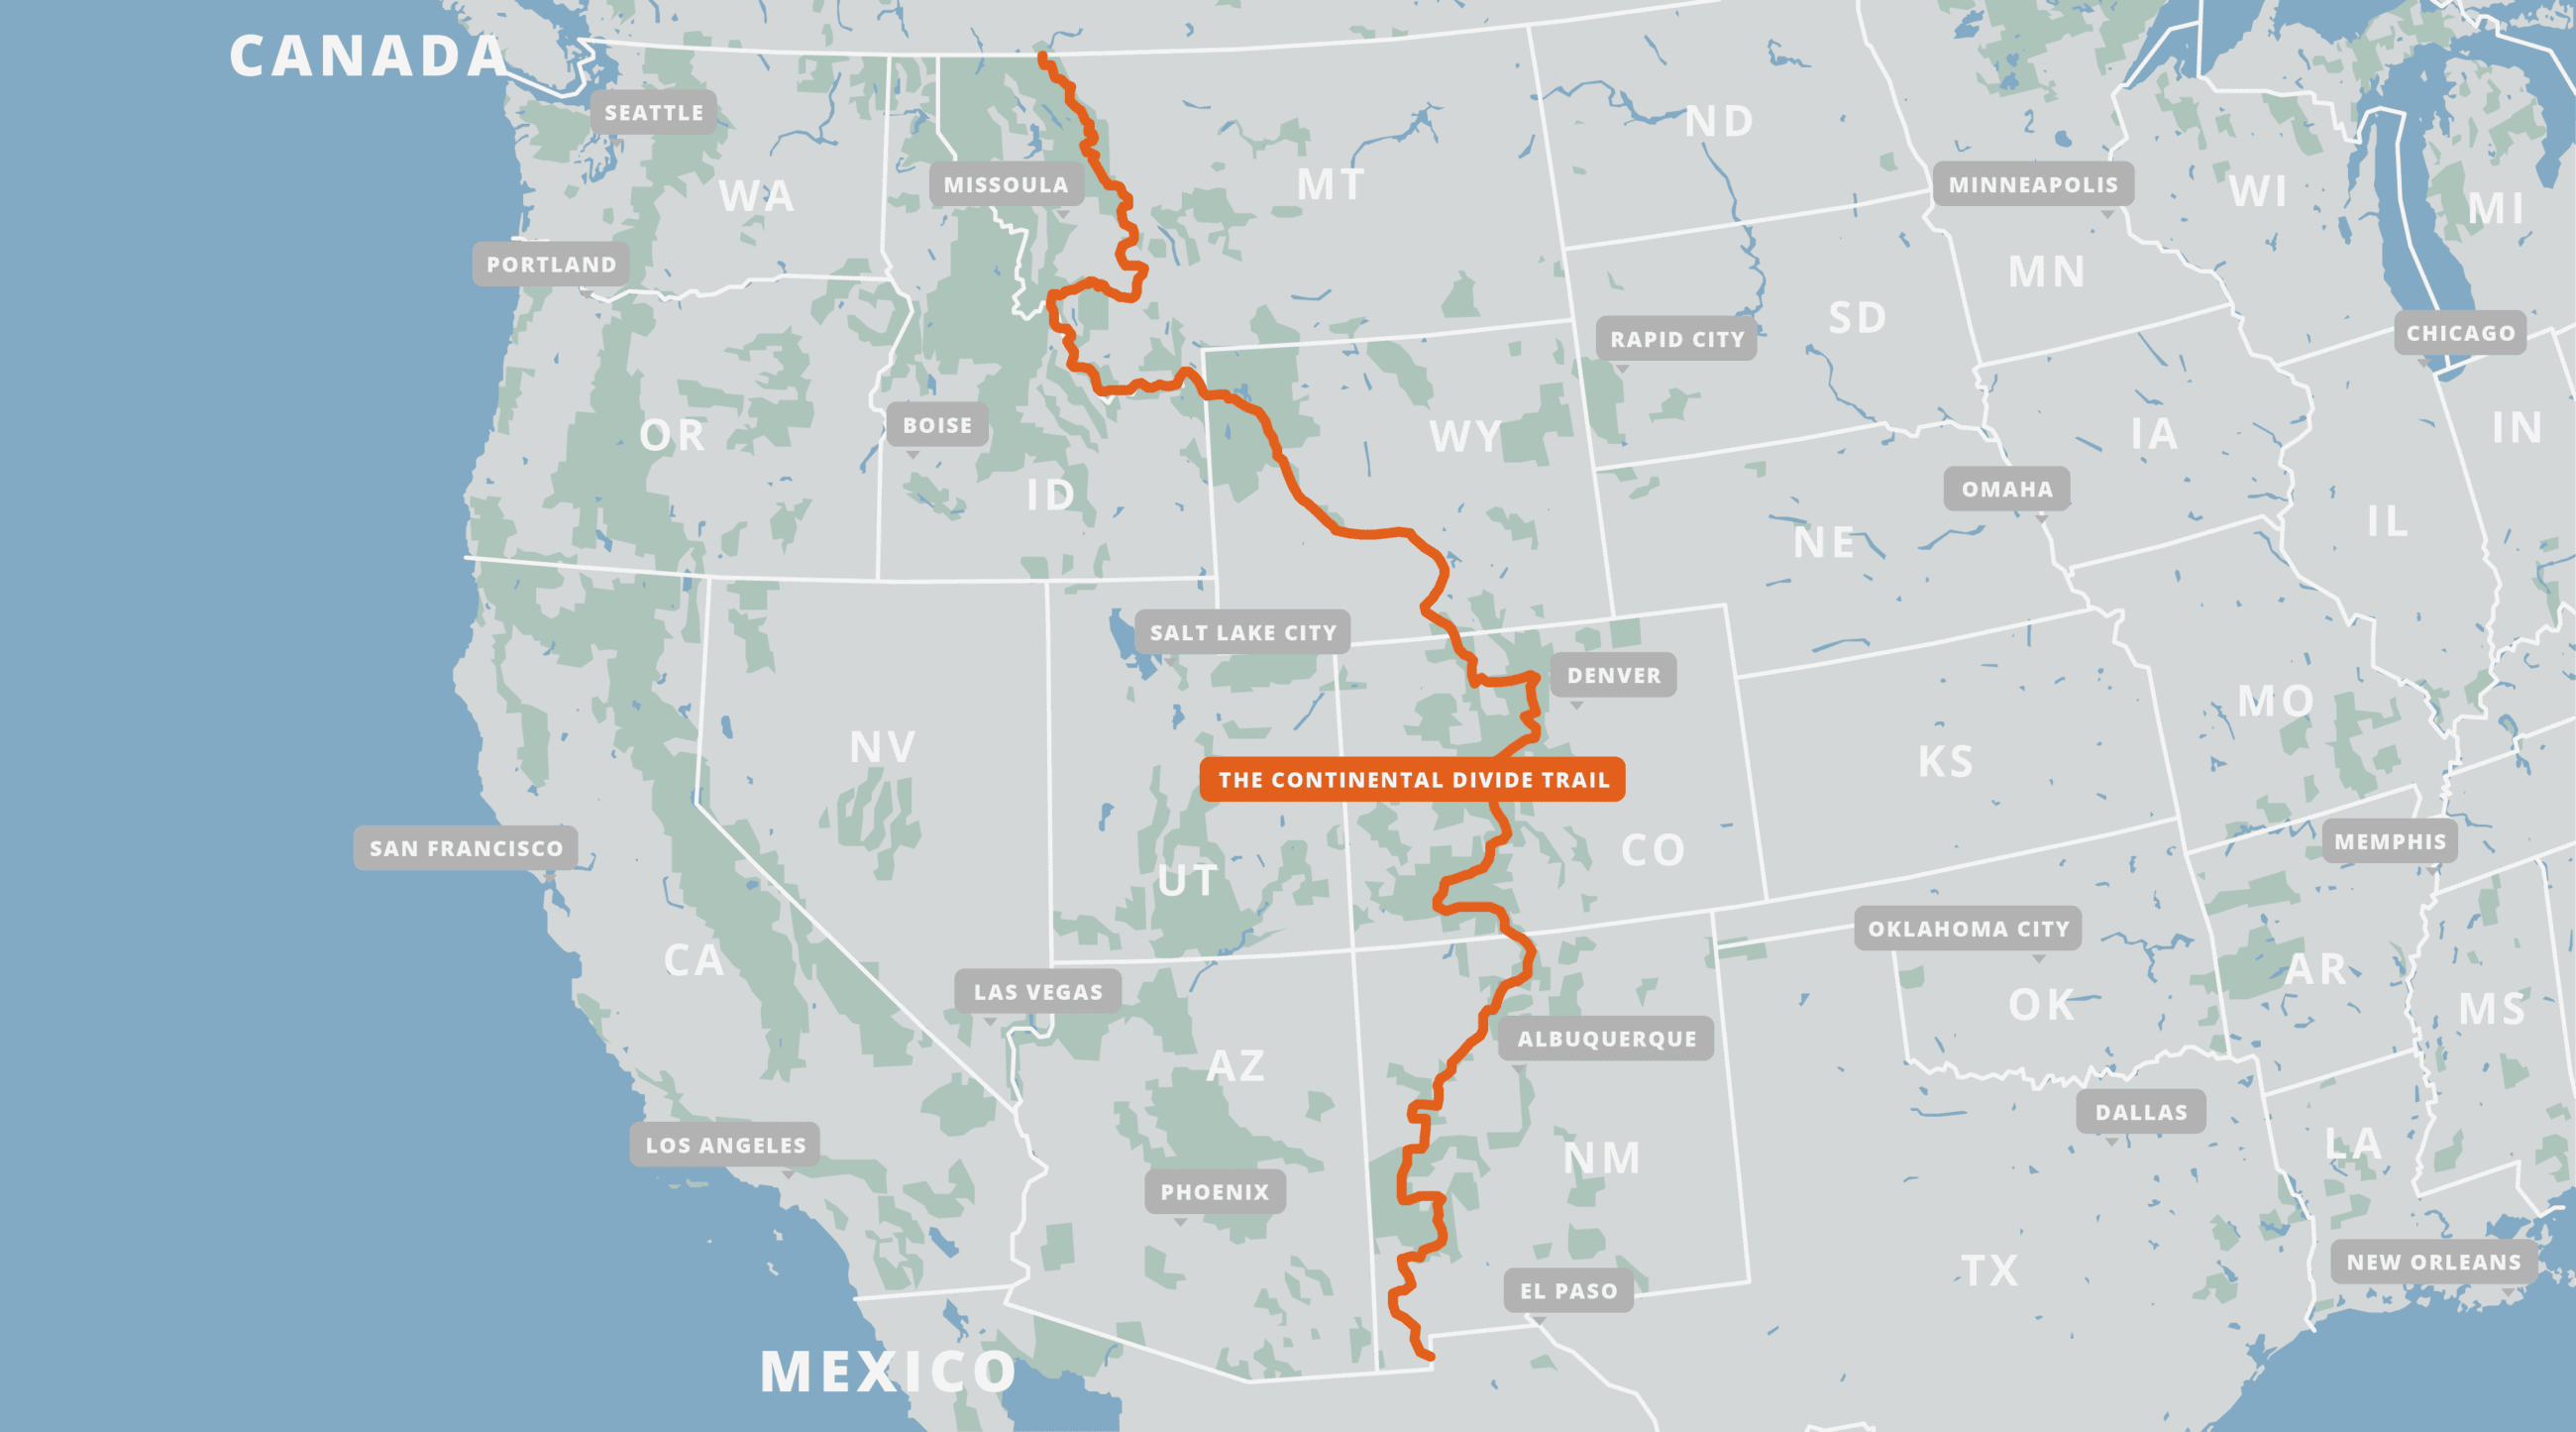 A map of the Continental Divide Trail.